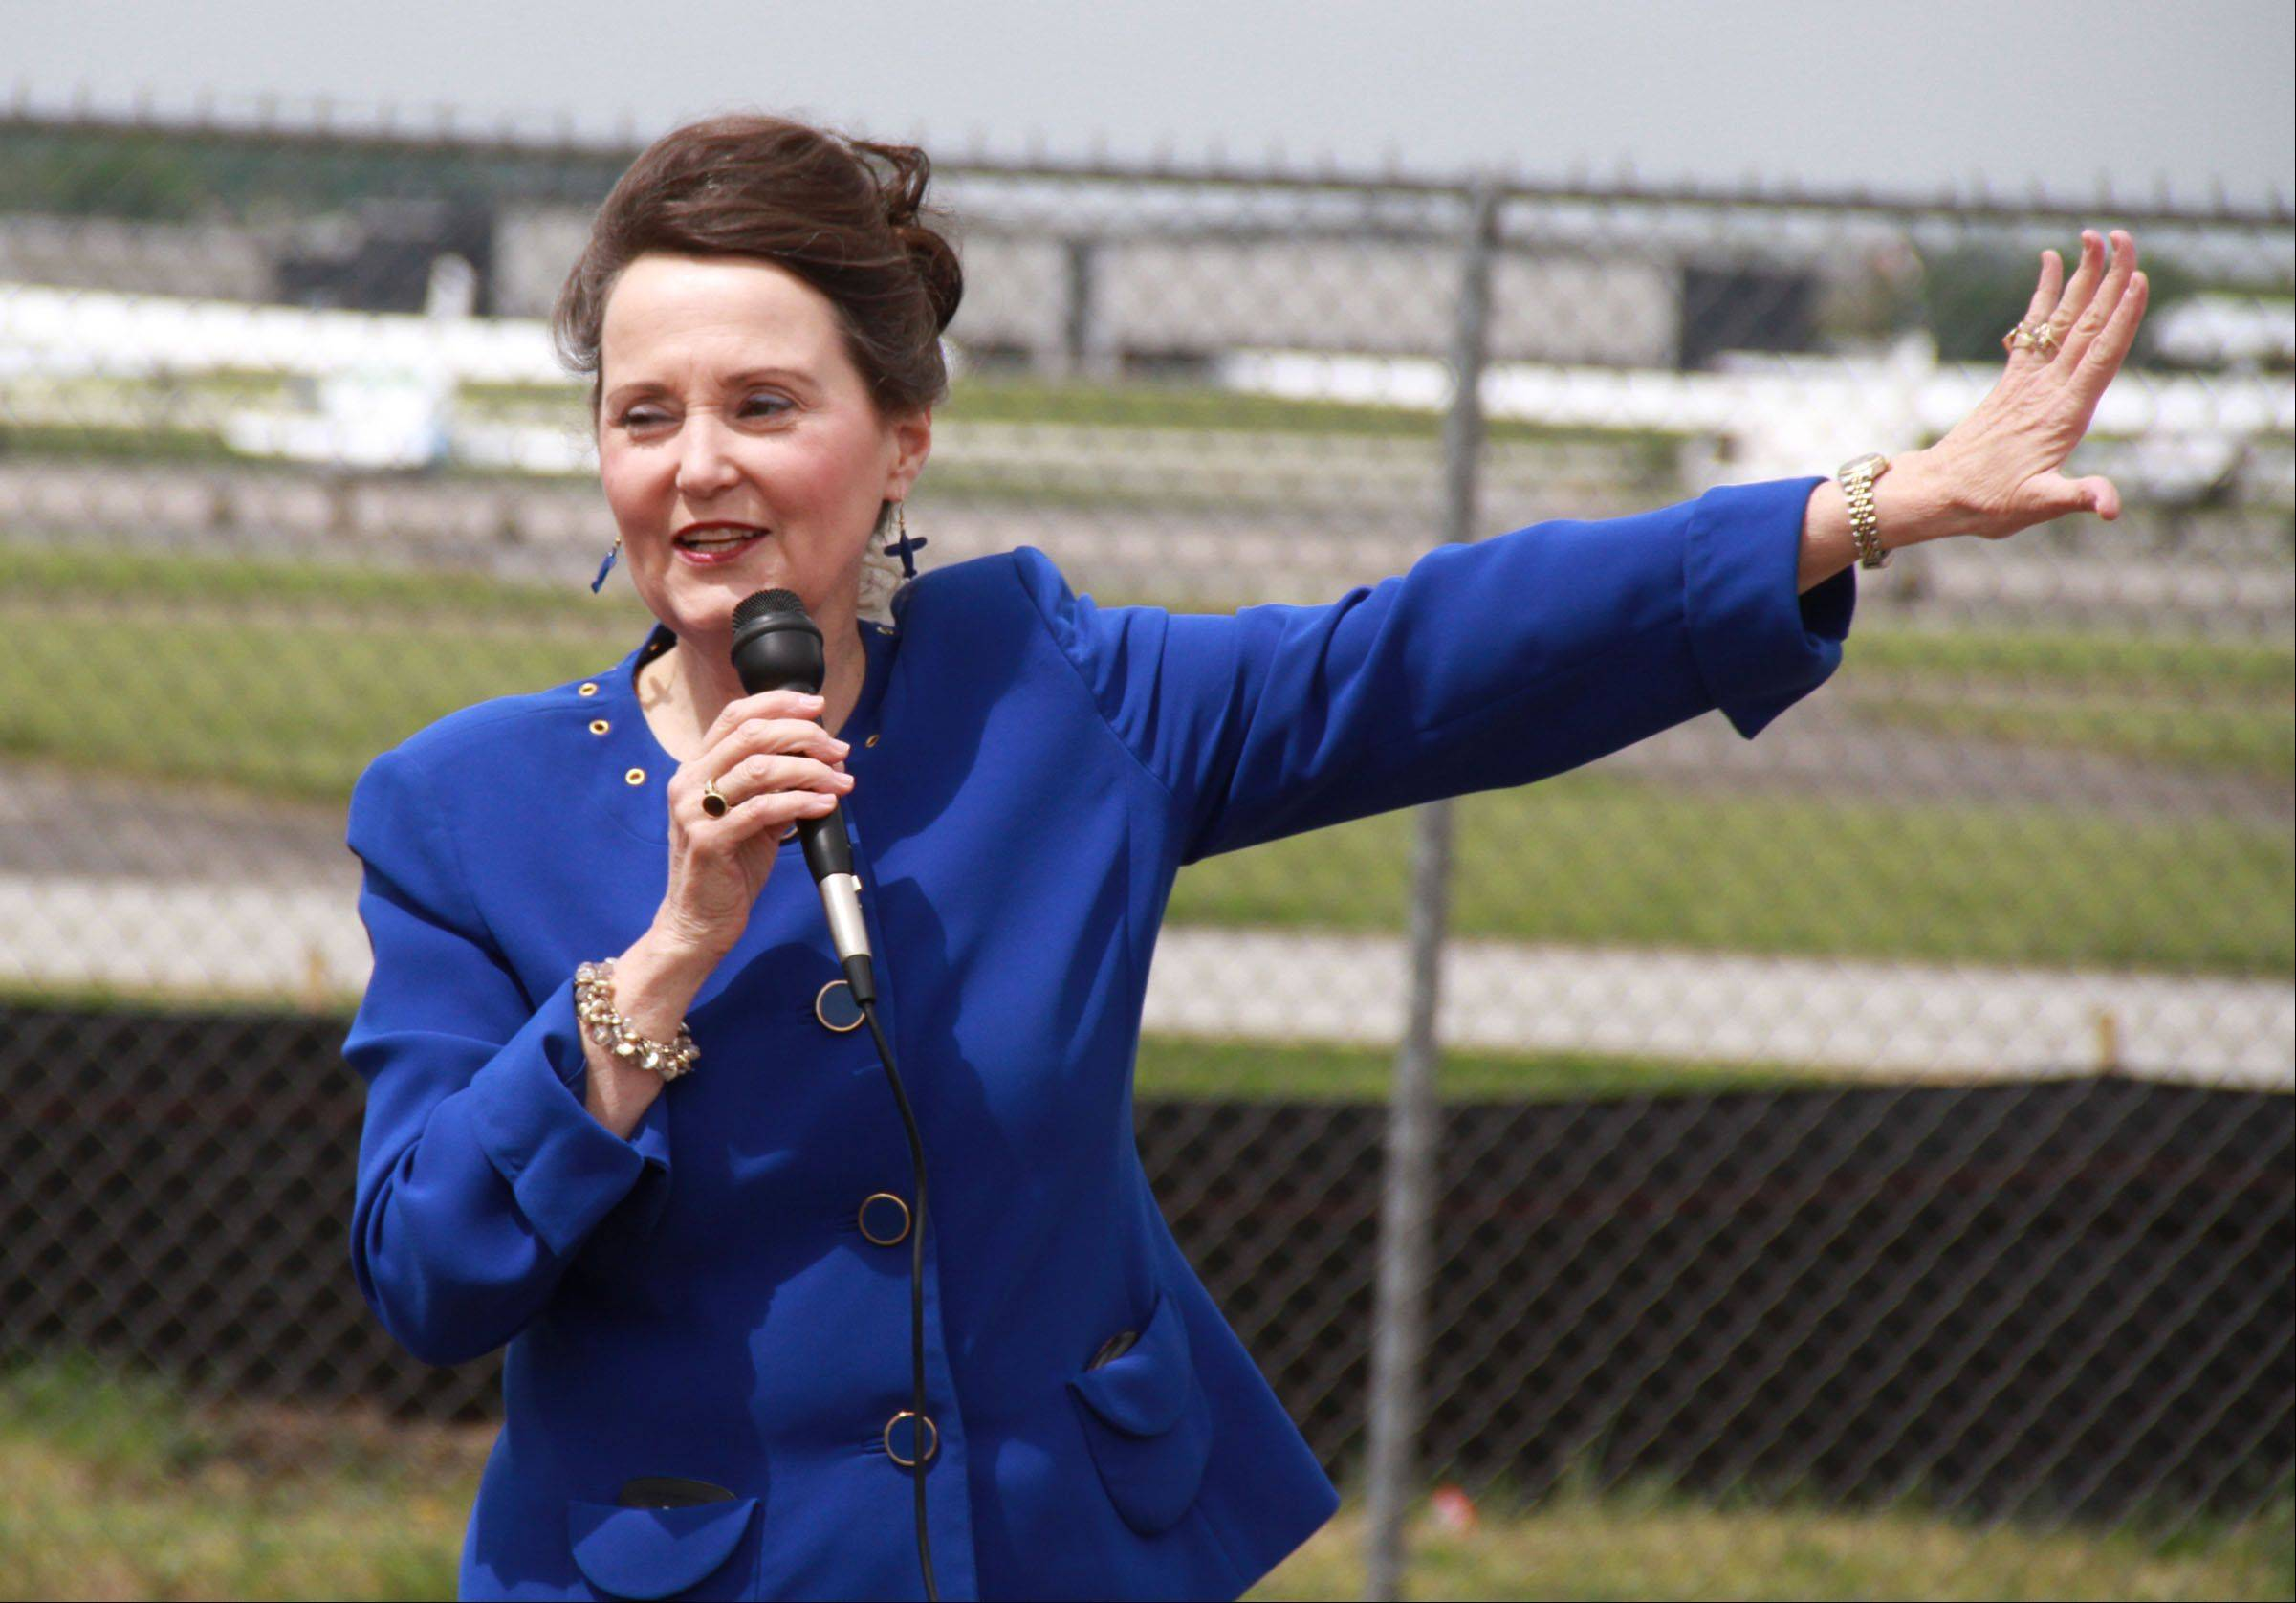 Susan Shea, director of the Illinois Division of Aeronautics speaks during a groundbreaking for a new facility by Hawthorne Global Aviation Service that includes a new hangar, executive terminal, and executive offices on the Prospect Heights side of the Chicago Executive Airport.